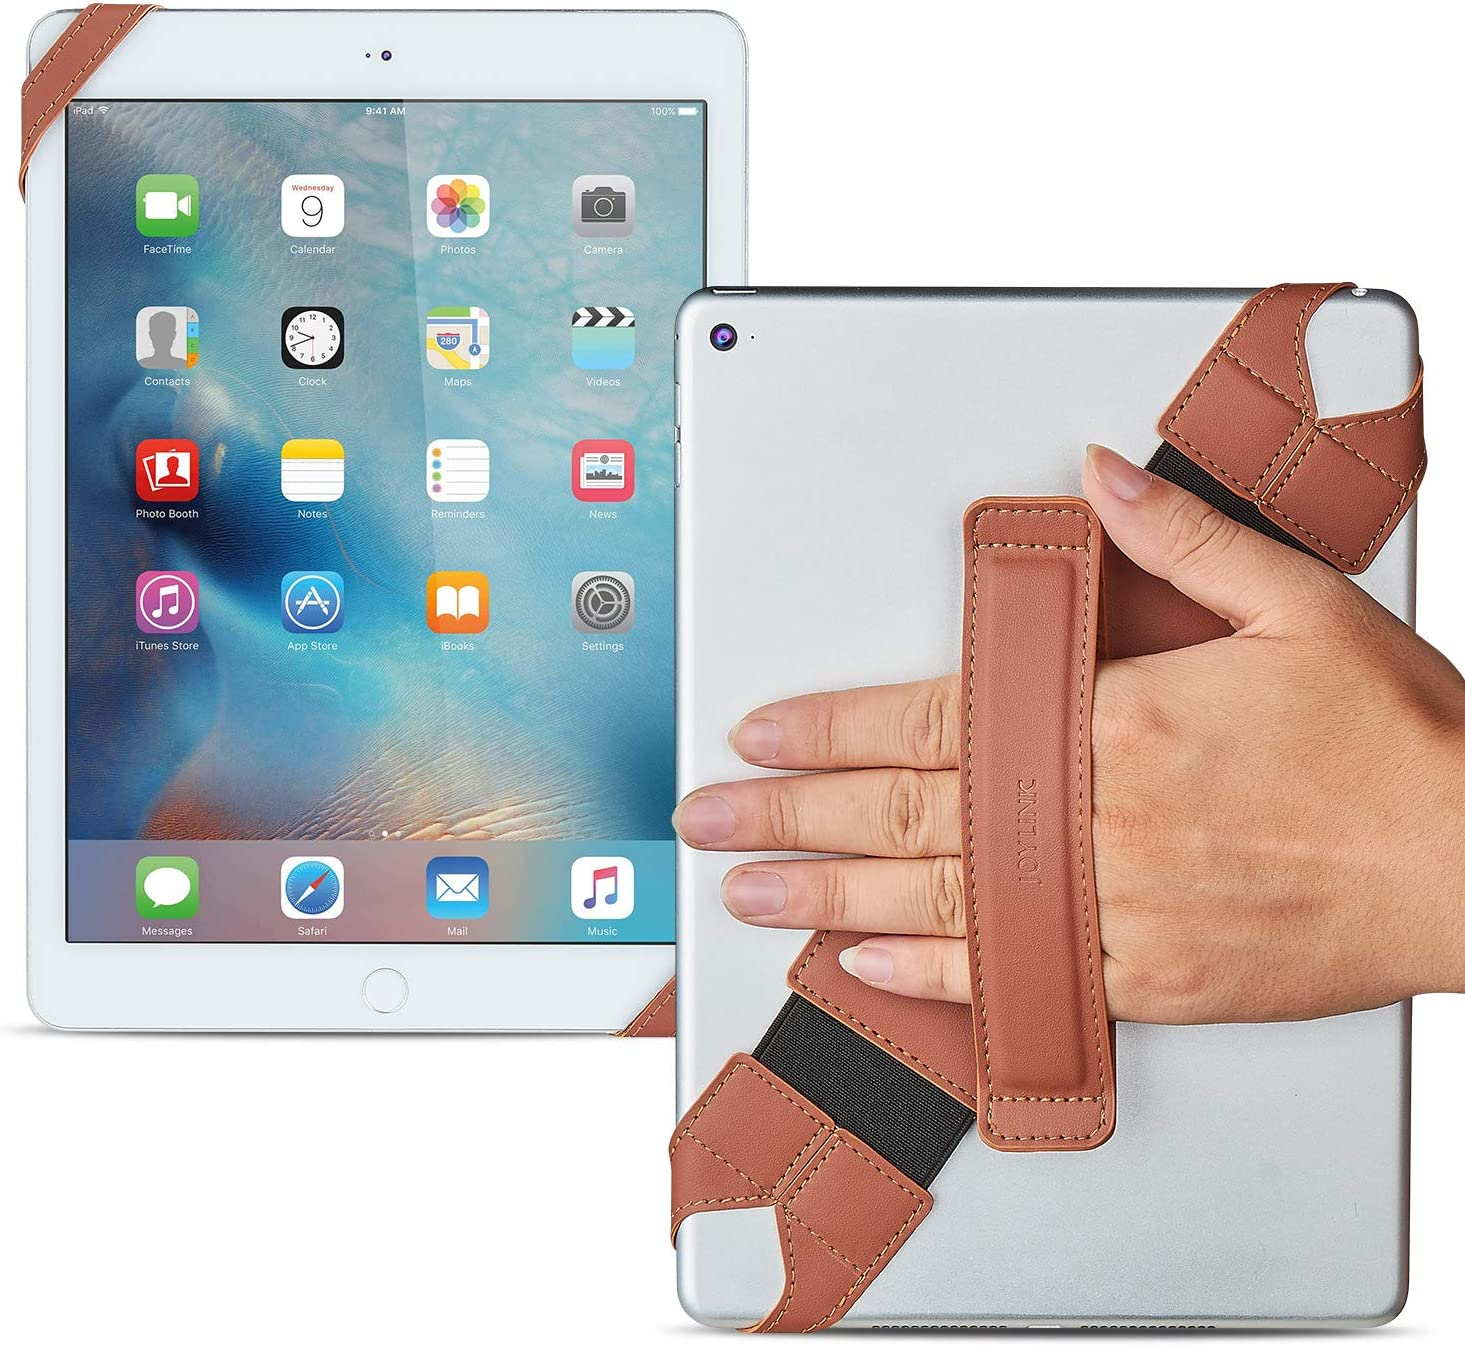 Universal Tablet Hand Strap Holder, Joylink 360 Degrees Swivel Leather Handle Grip with Elastic Belt, Secure & Portable for 10.1 Inch Tablets (Samsung Asus Acer Google iPad), Brown